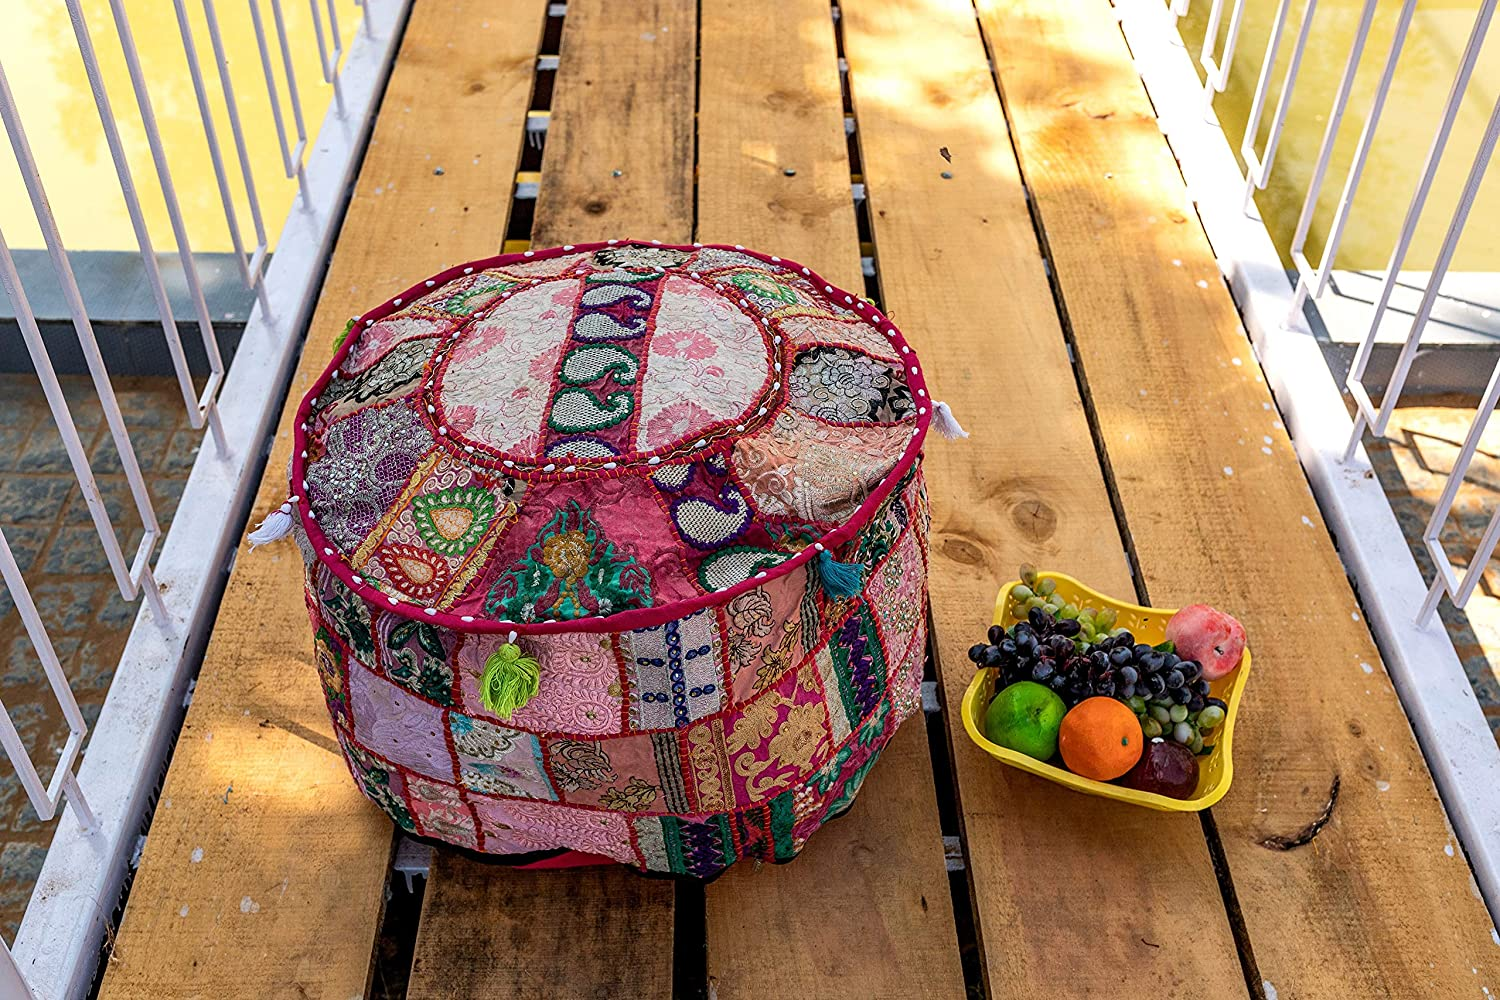 THE ART BOX Cotton Patchwork Vintage Albuquerque Mall Boho Bean S Over item handling ☆ Embroidered Bag